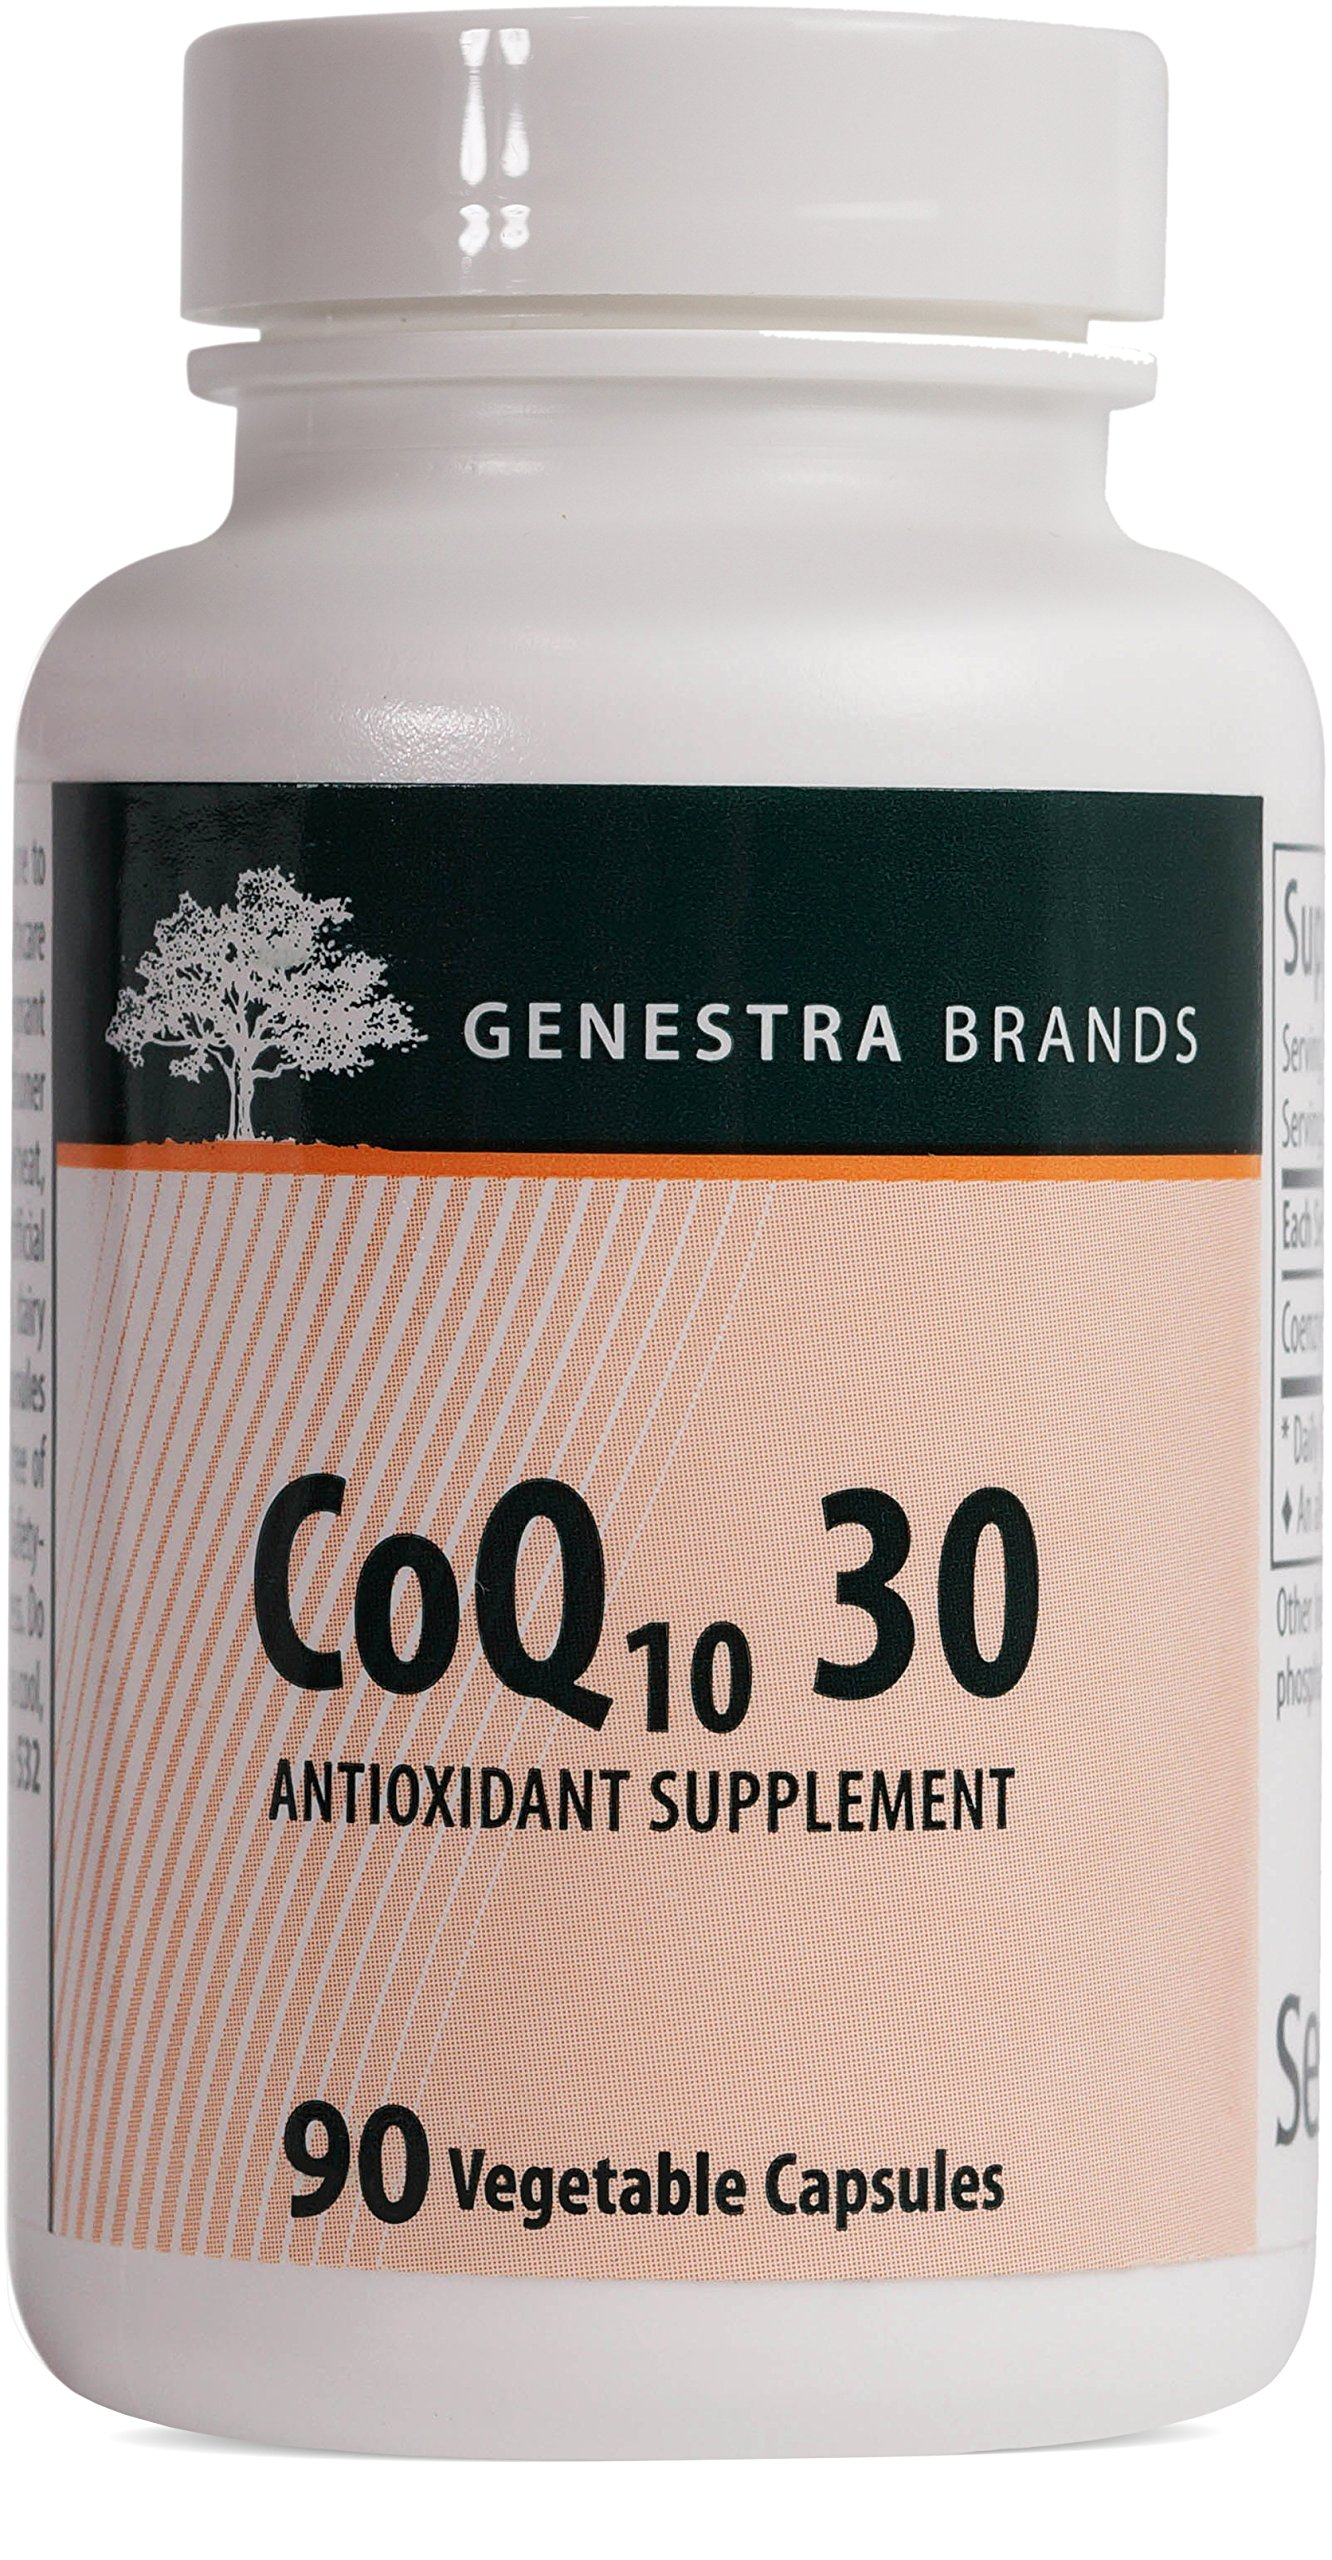 Genestra Brands - CoQ10 30 - Coenzyme Q10 Supplement - 90 Vegetable Capsules